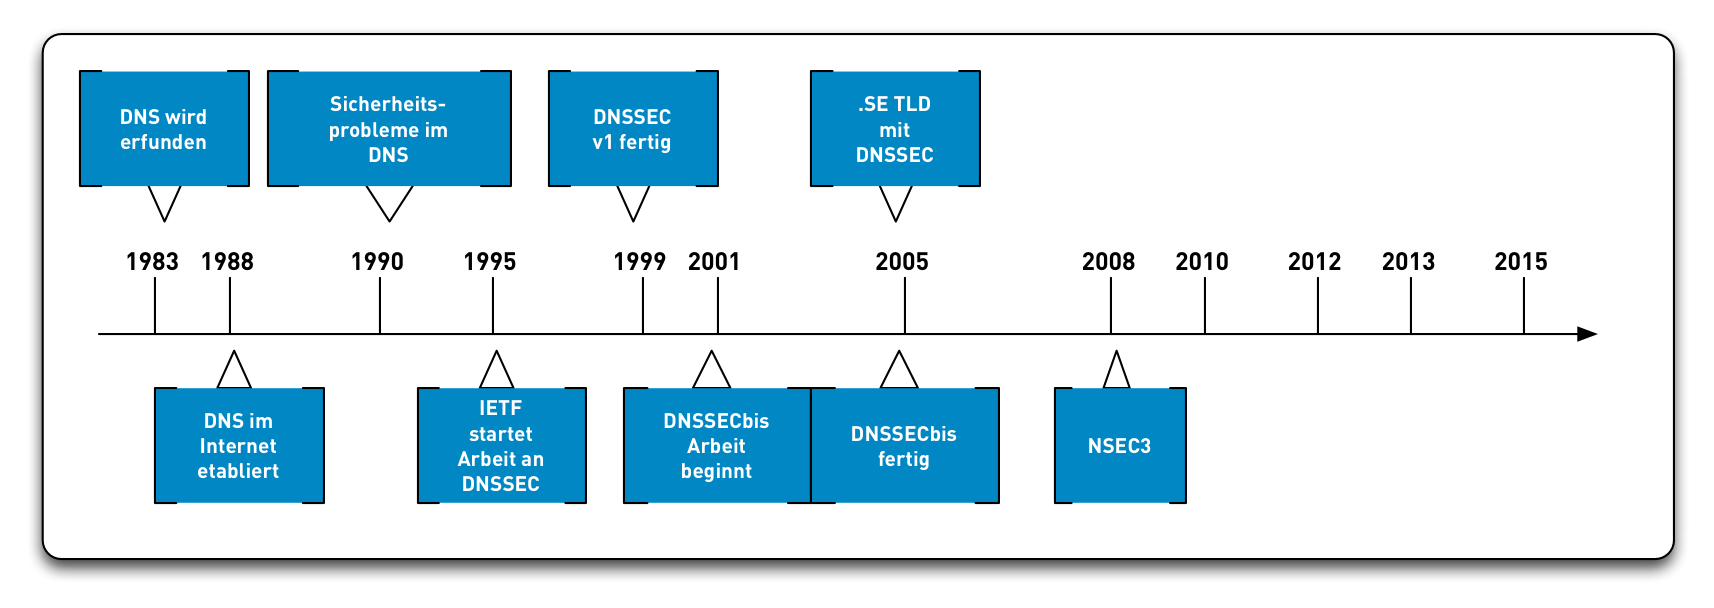 DNSSEC-History10.png